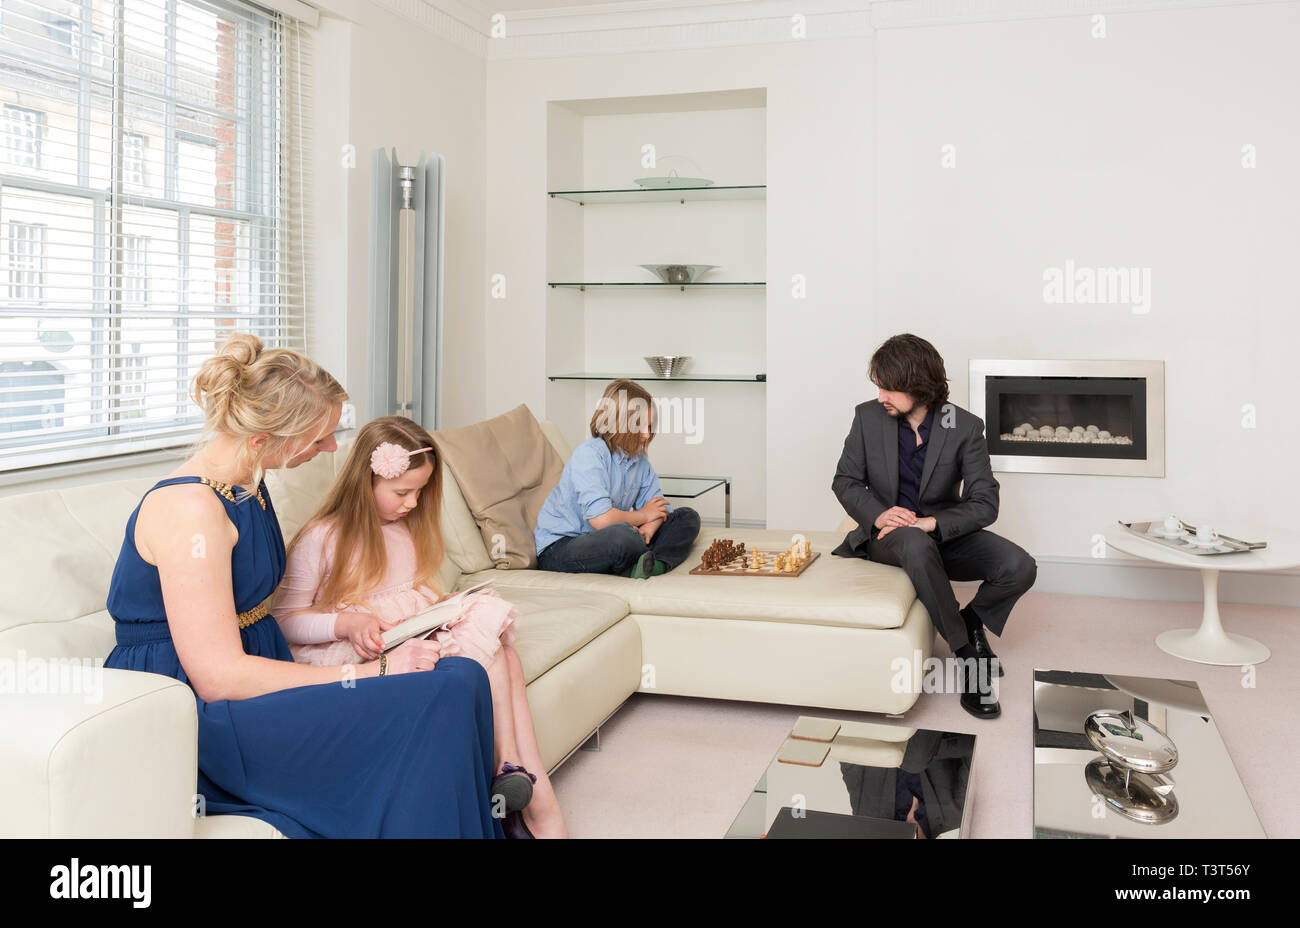 Caucasian family relaxing in living room - Stock Image